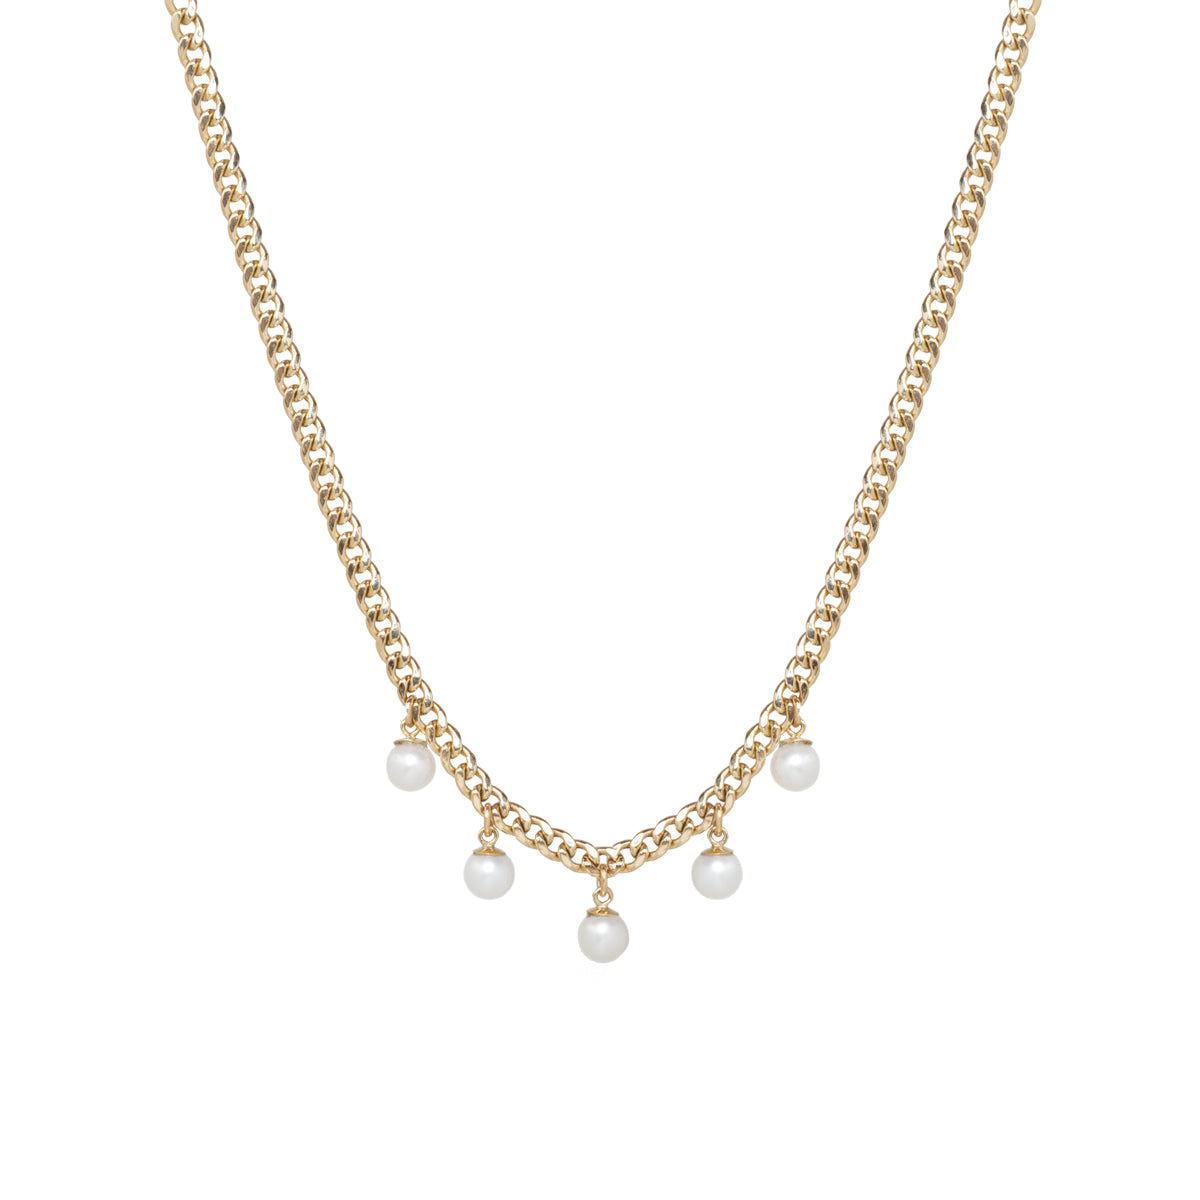 14k gold small curb chain necklace with 5 dangling pearls